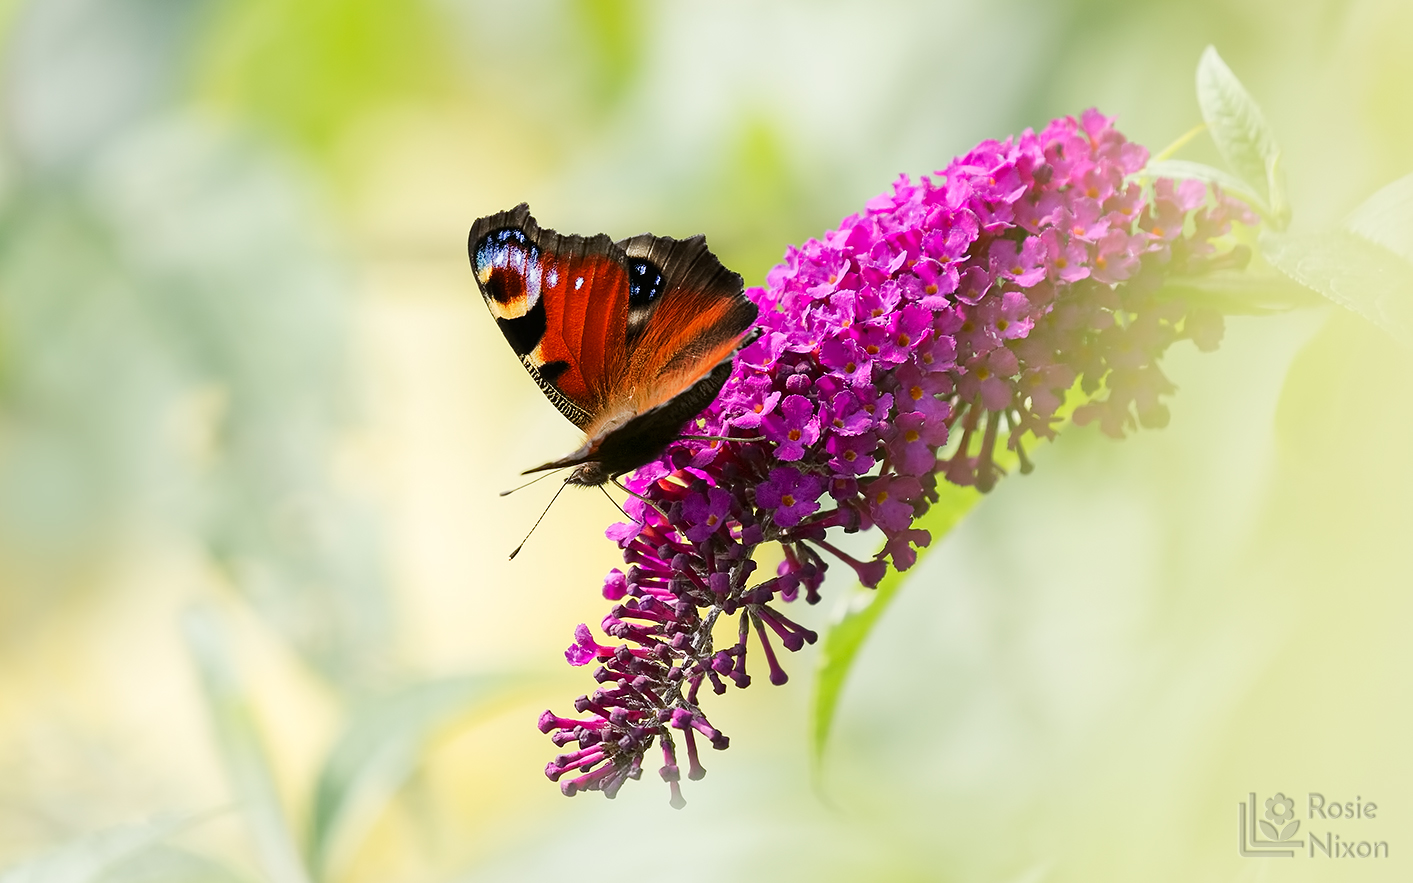 A peacock butterfly drinking nectar from a butterfly bush in summer.